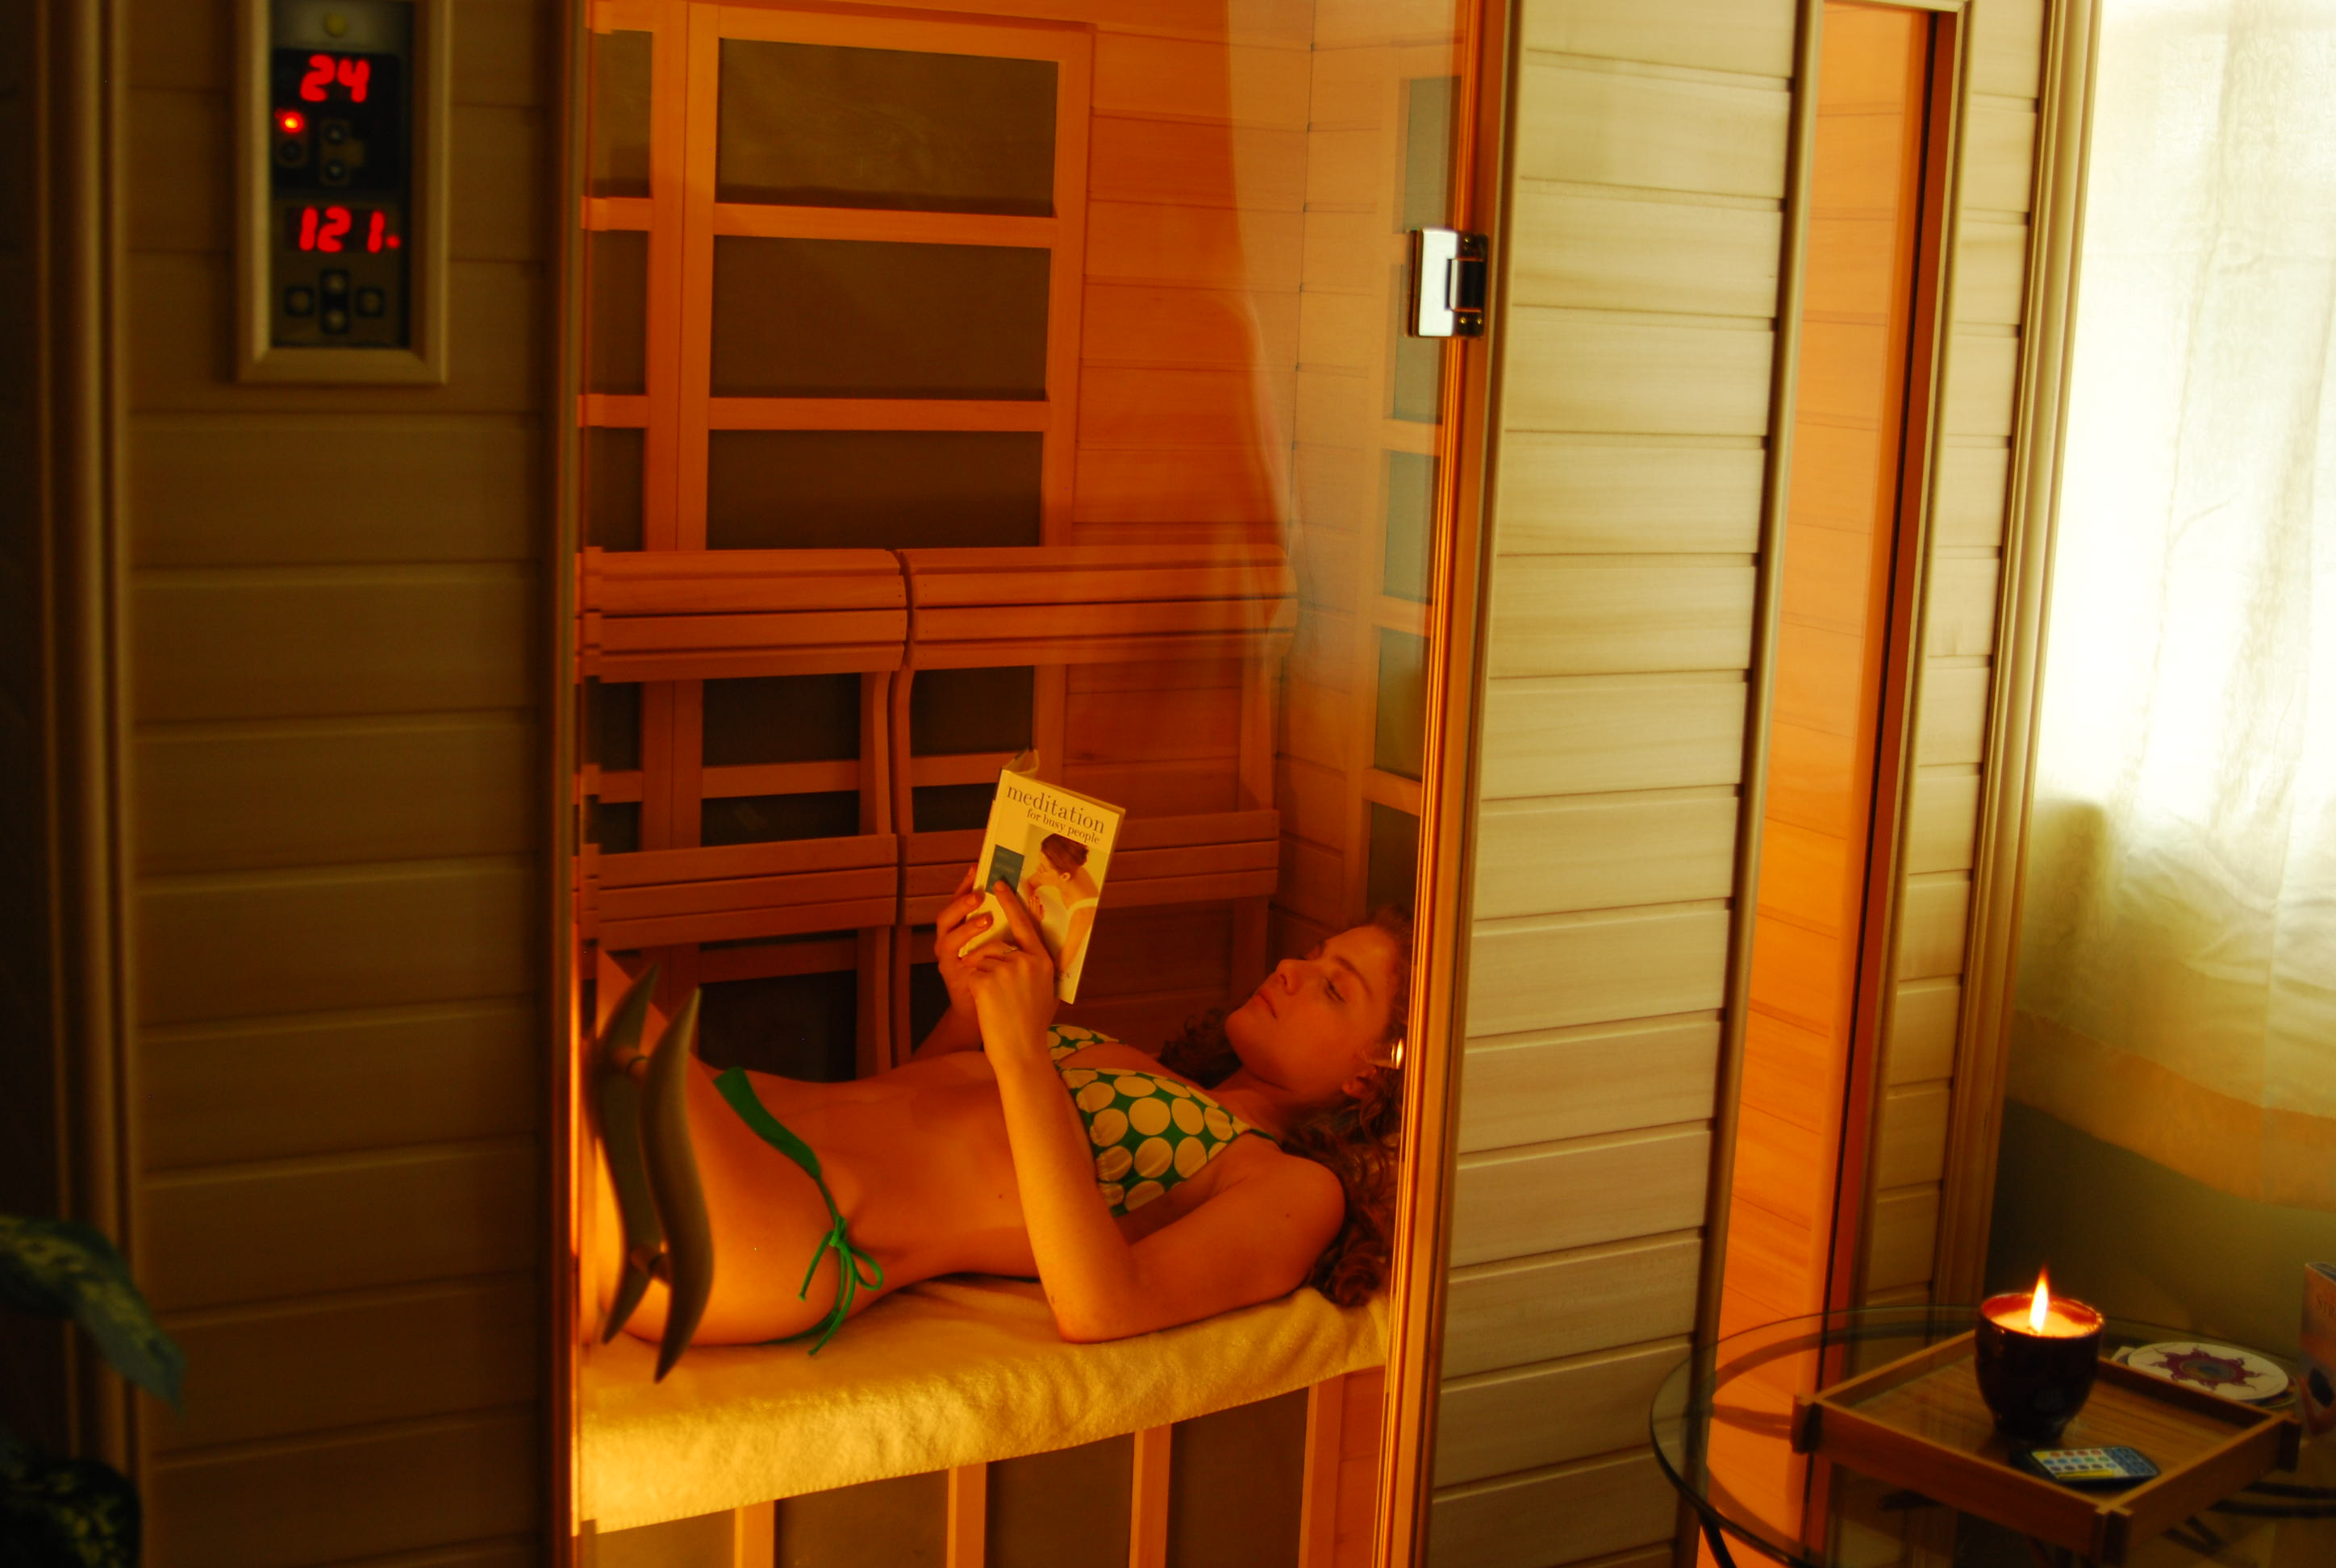 Total freedom wellness spa infrared sauna session total freedom infrared sauna session altavistaventures Images